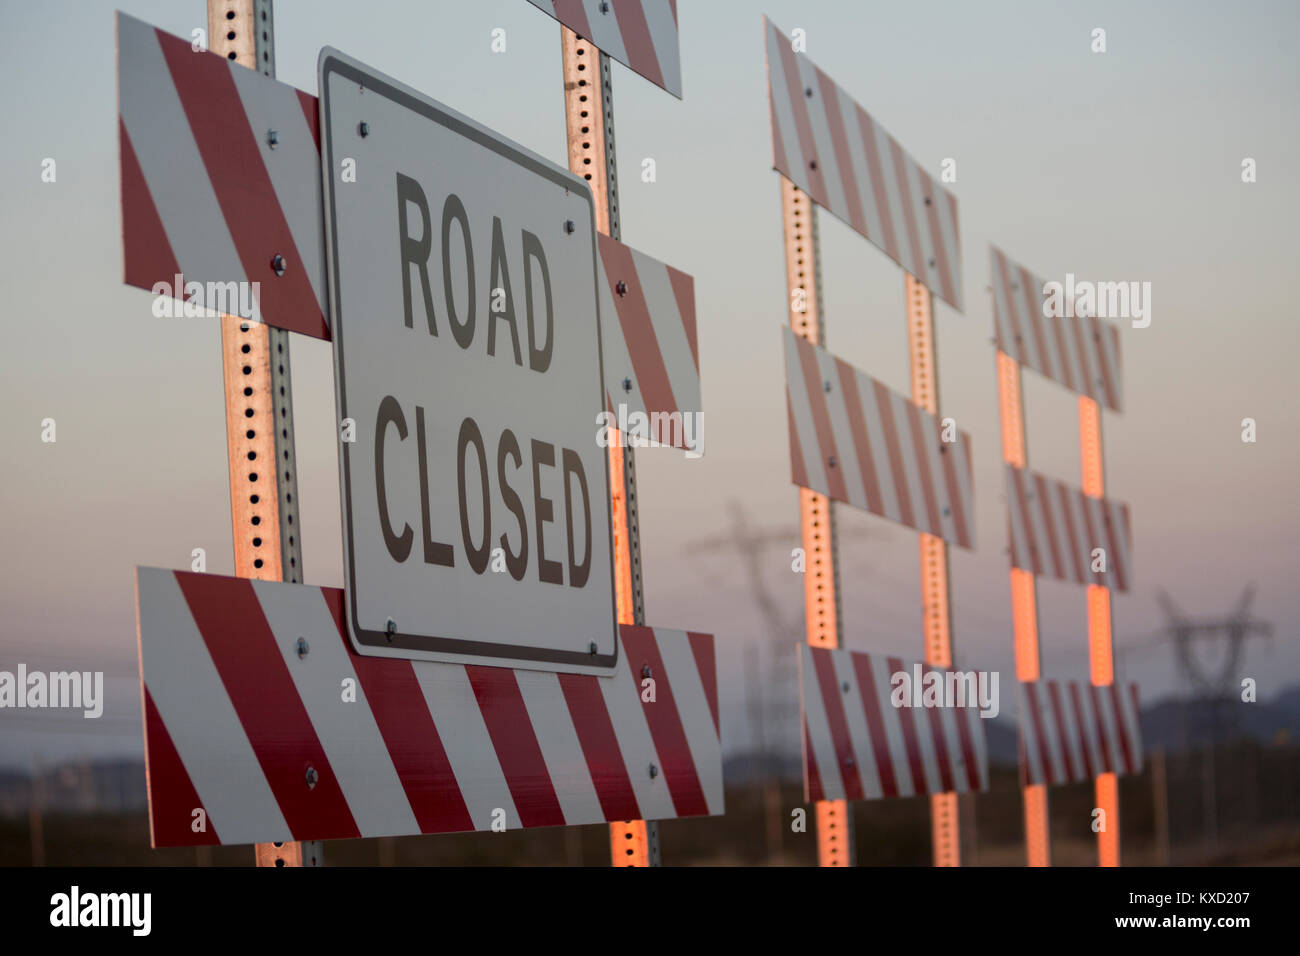 Road closed sign on barricade against sky during sunset - Stock Image